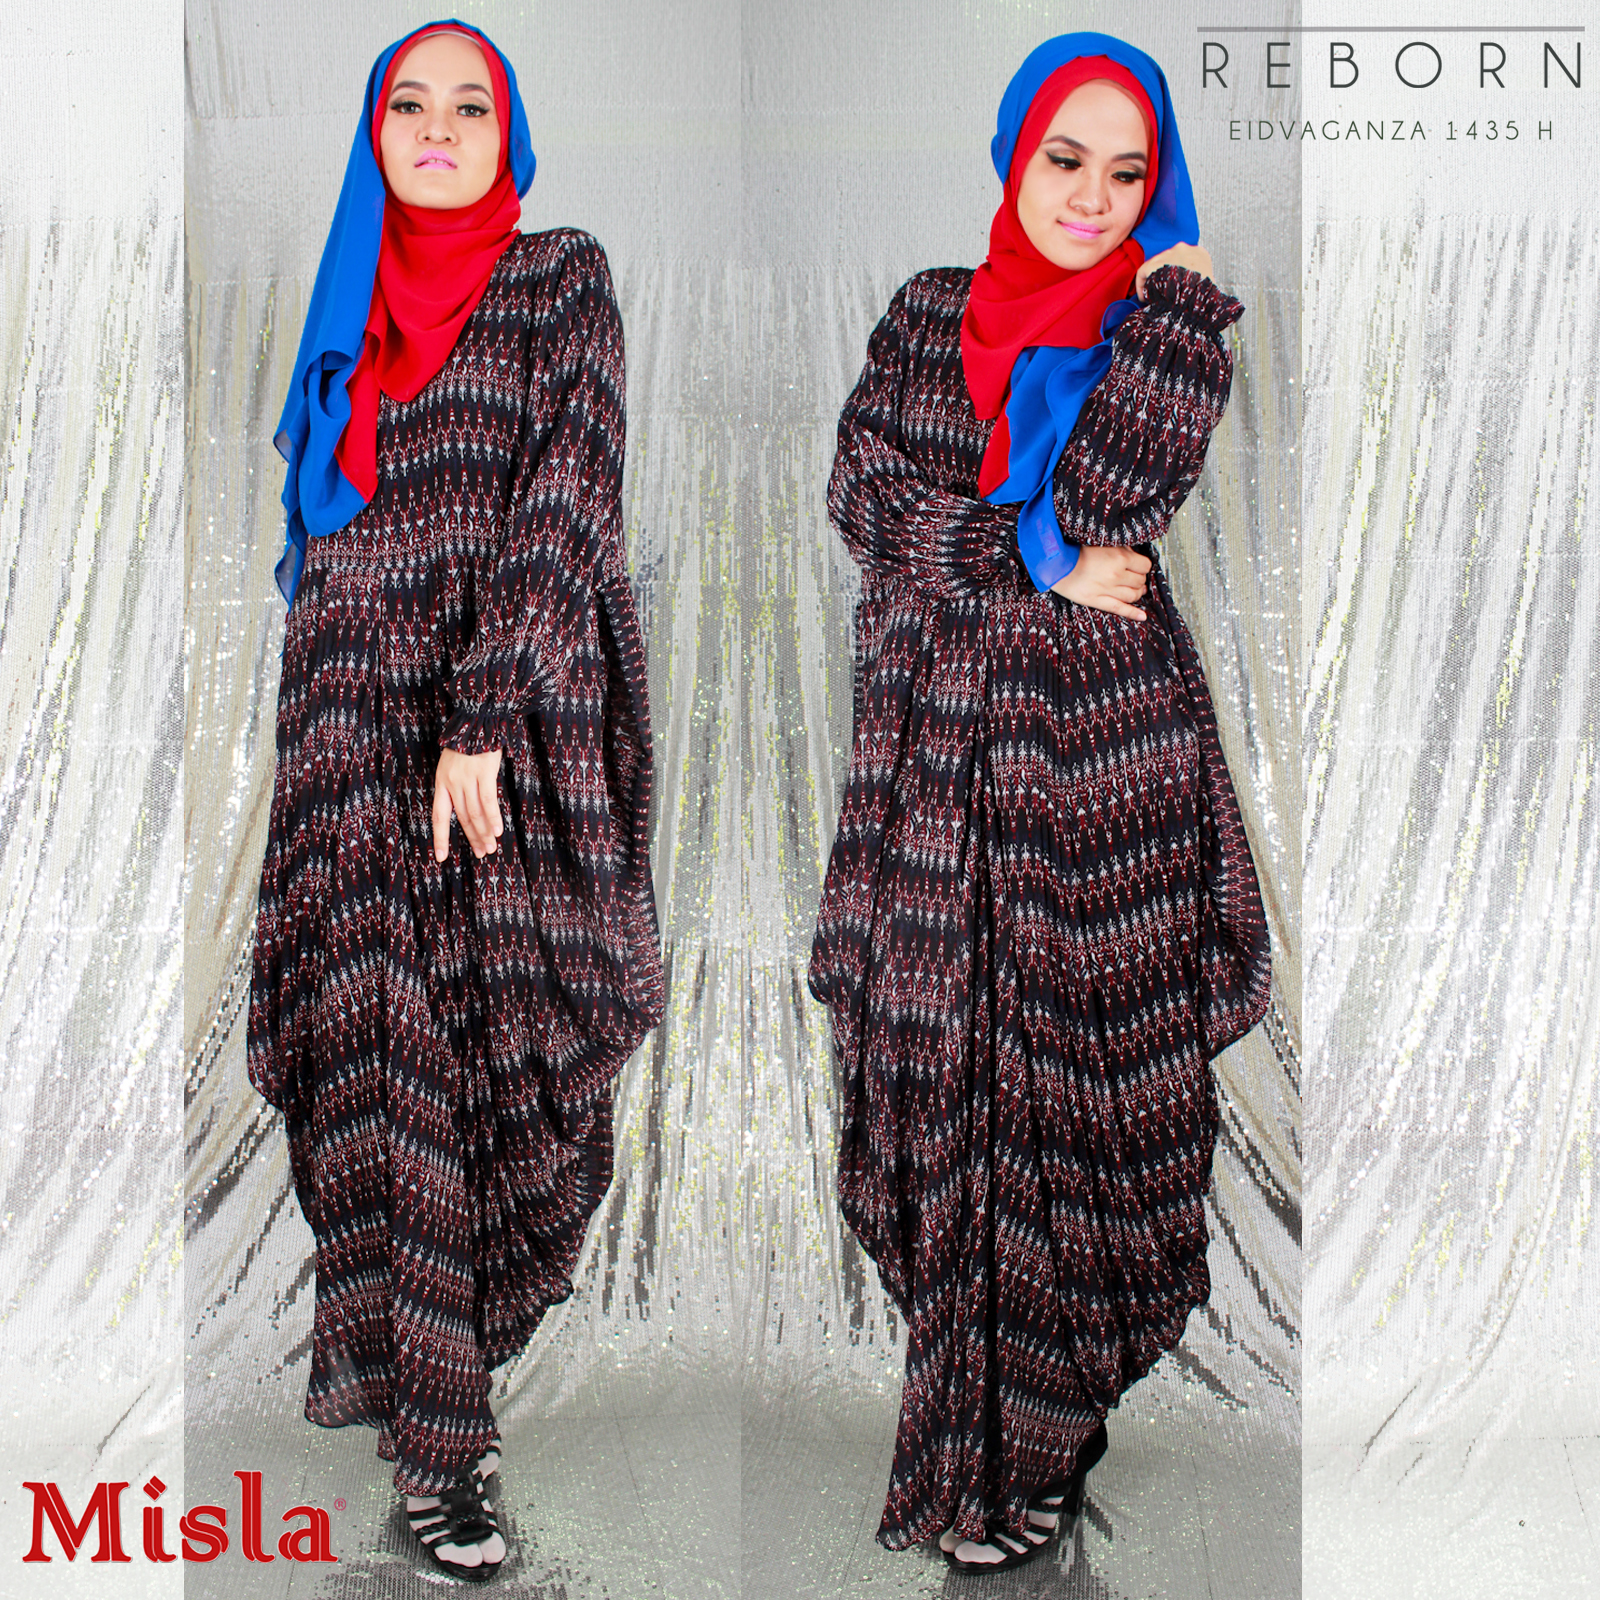 davina-abaya-black Vania Family Set on Reborn: Eidvaganza 1435 H